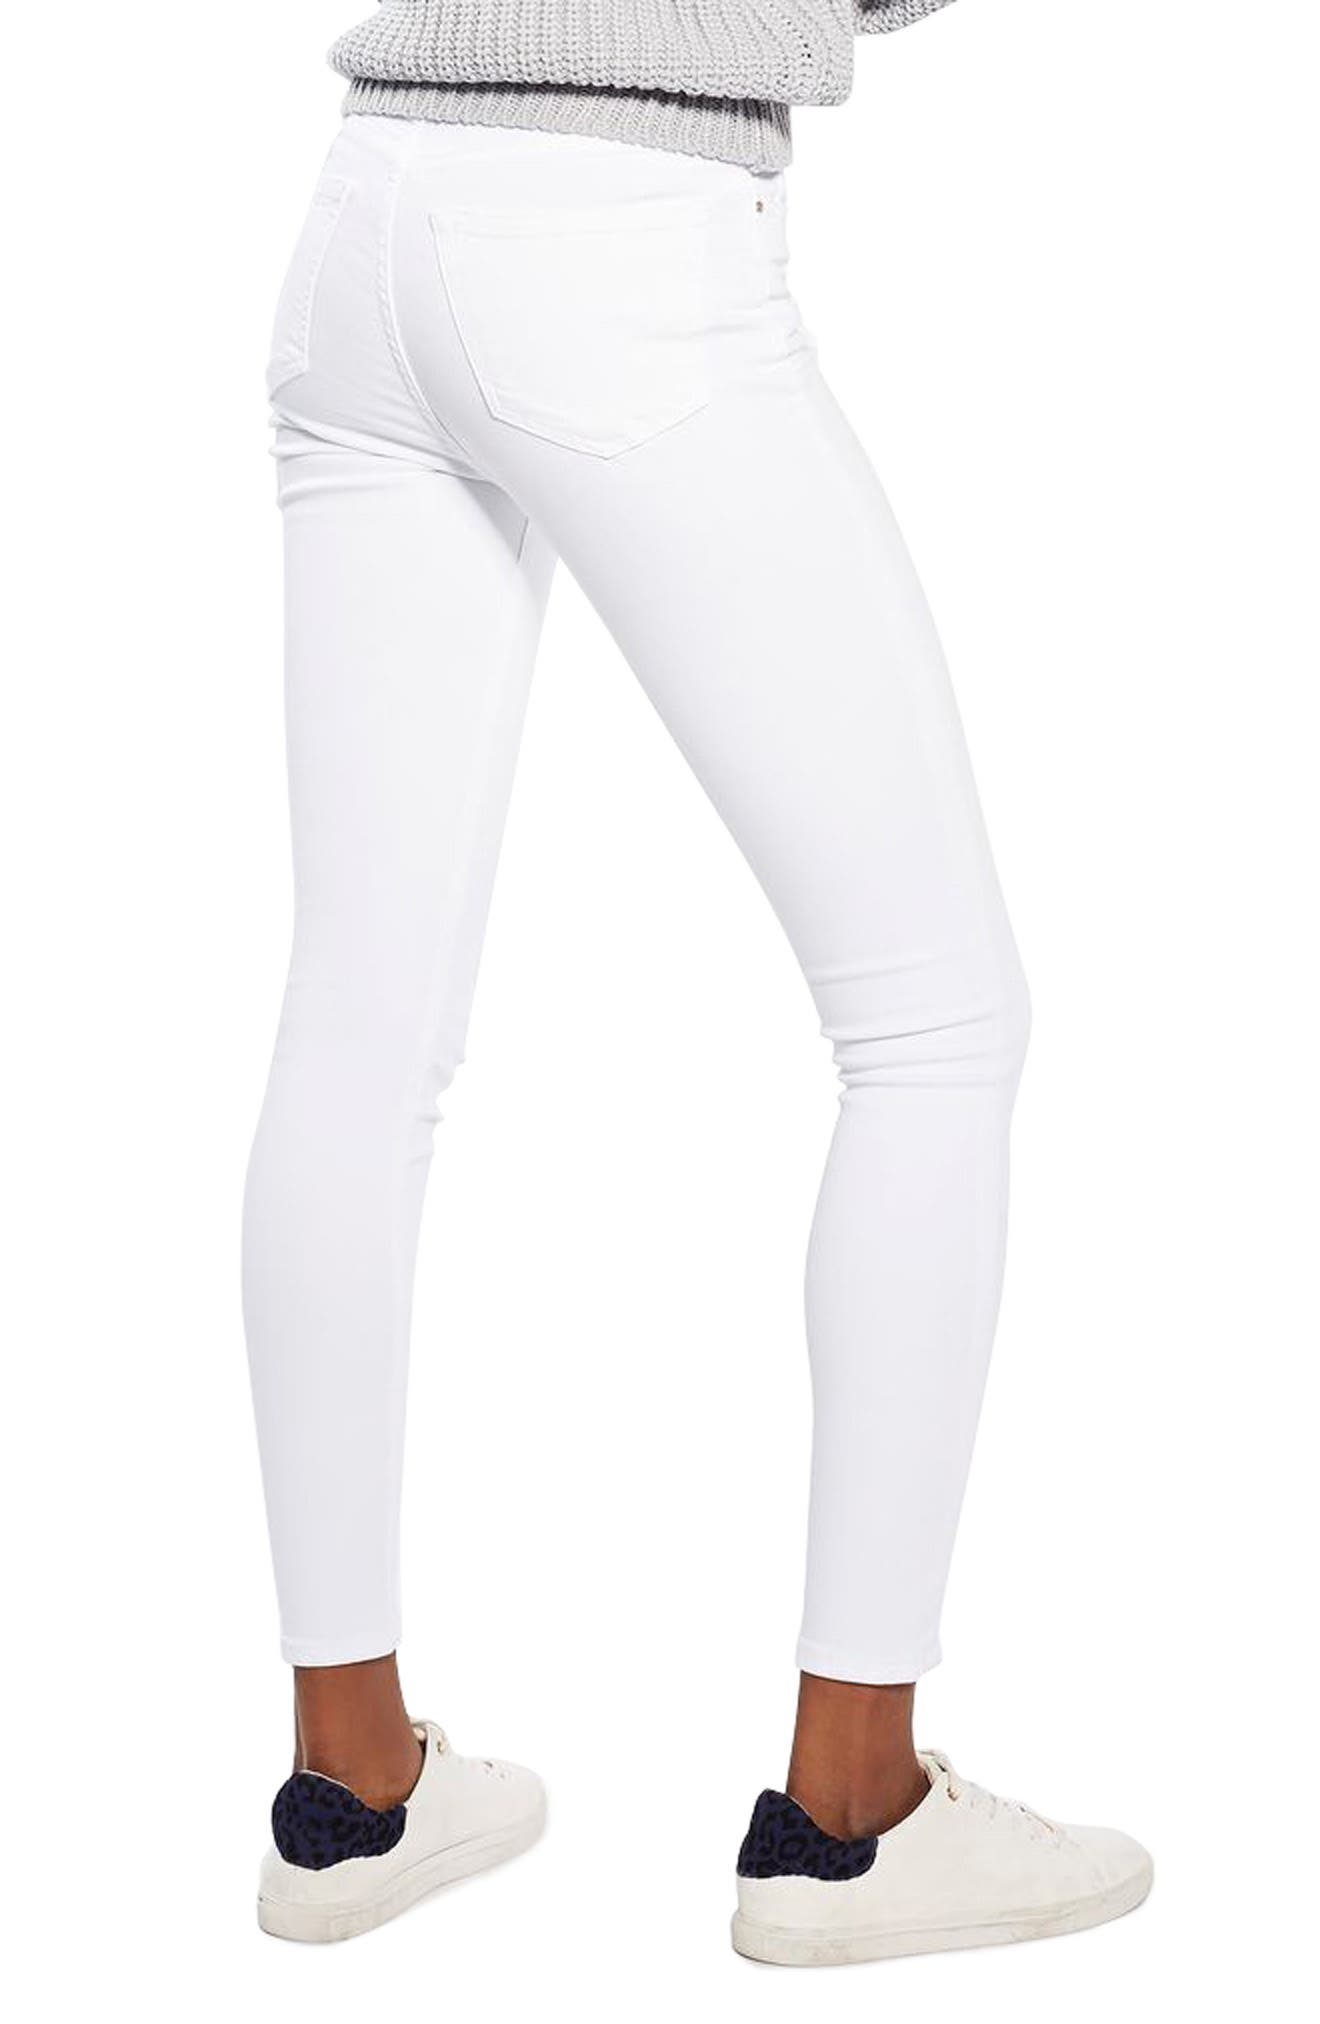 Jamie High Waist Ankle Skinny Jeans,                             Alternate thumbnail 3, color,                             White